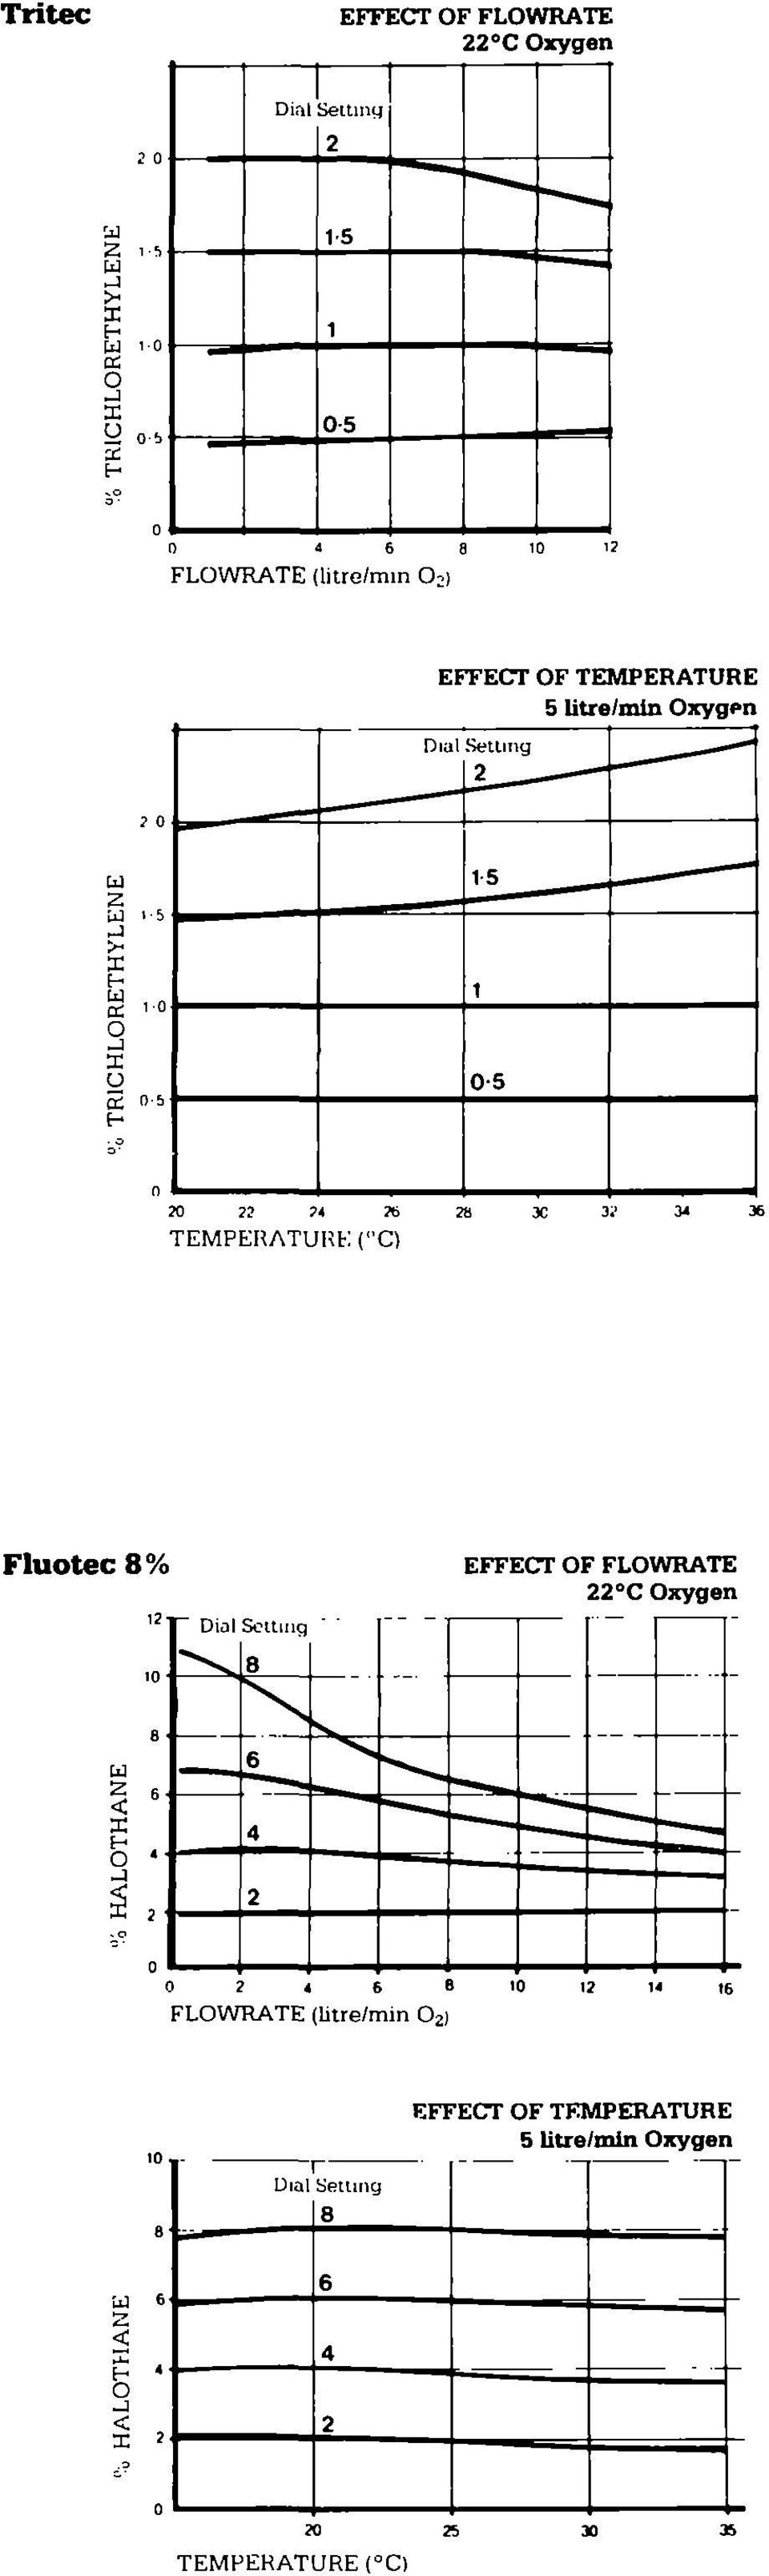 "n TEMPERATURE (""Q Fluotec 8% 0 8 * 0 Dial Setting 8 6 4 "" FLOWRATE (btre/min Oj) EFFECT OF FLOVtfRATE"